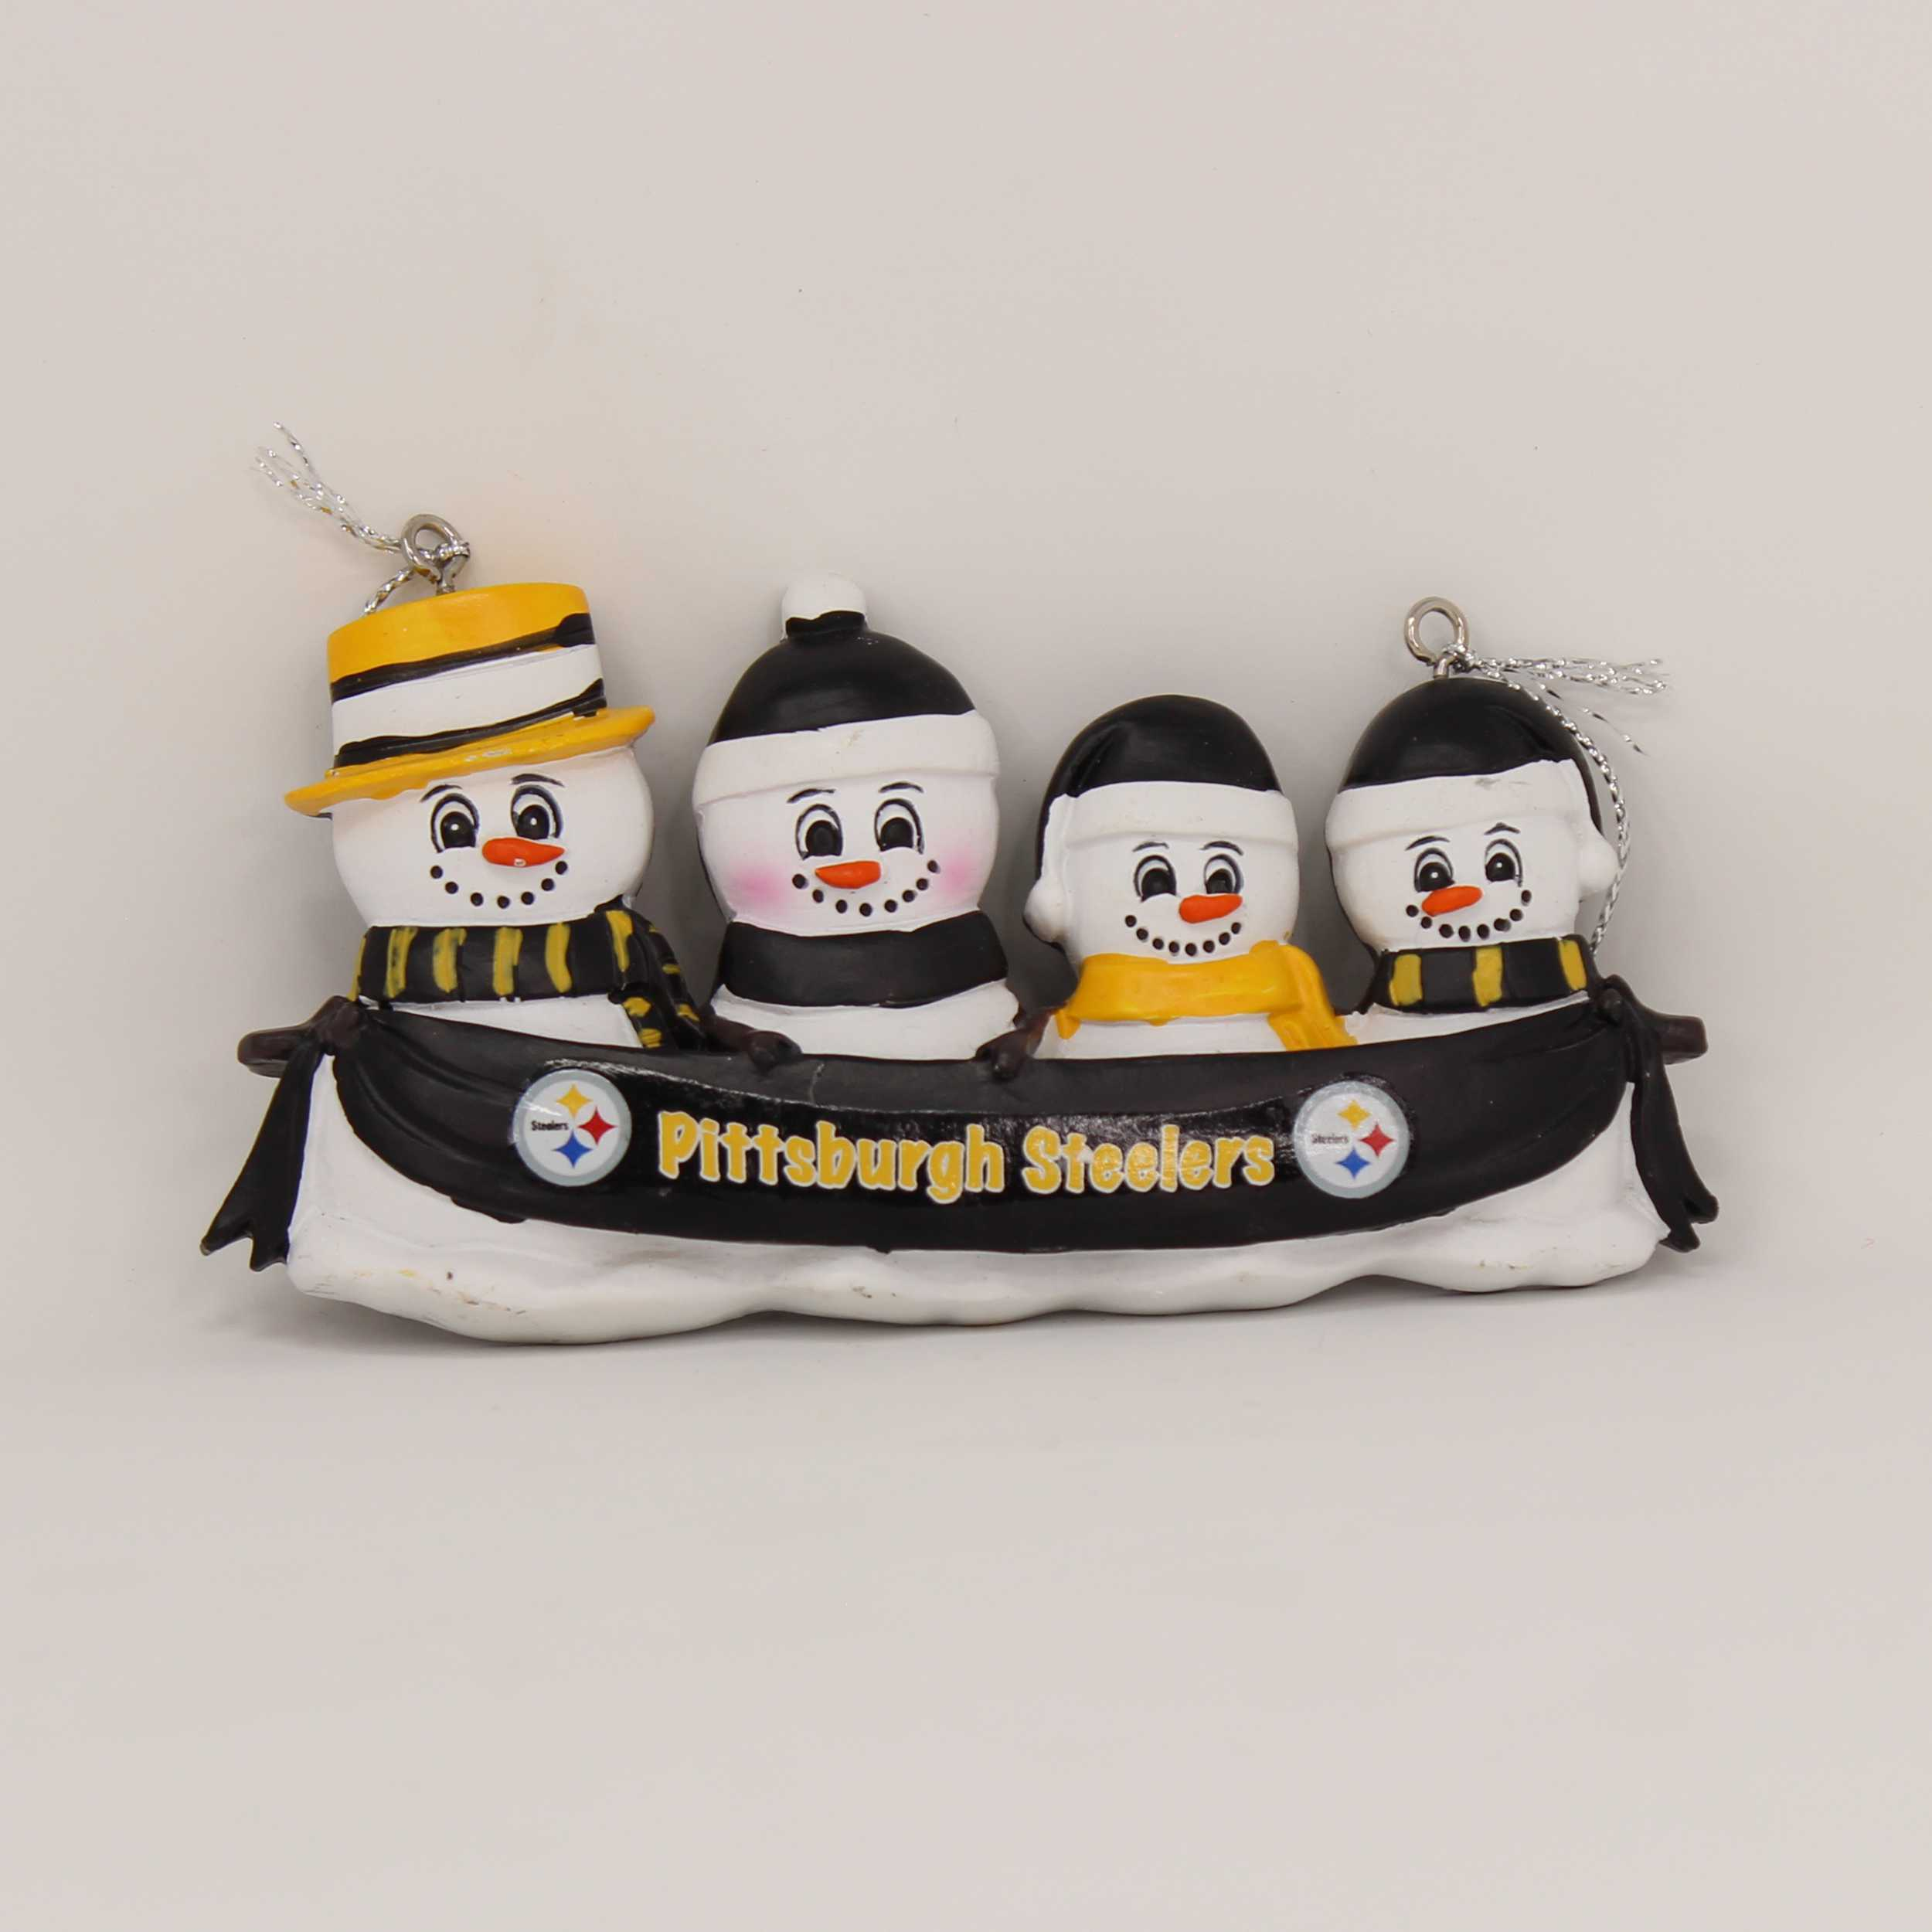 Personalized Family Ornament Pittsburgh Steelers